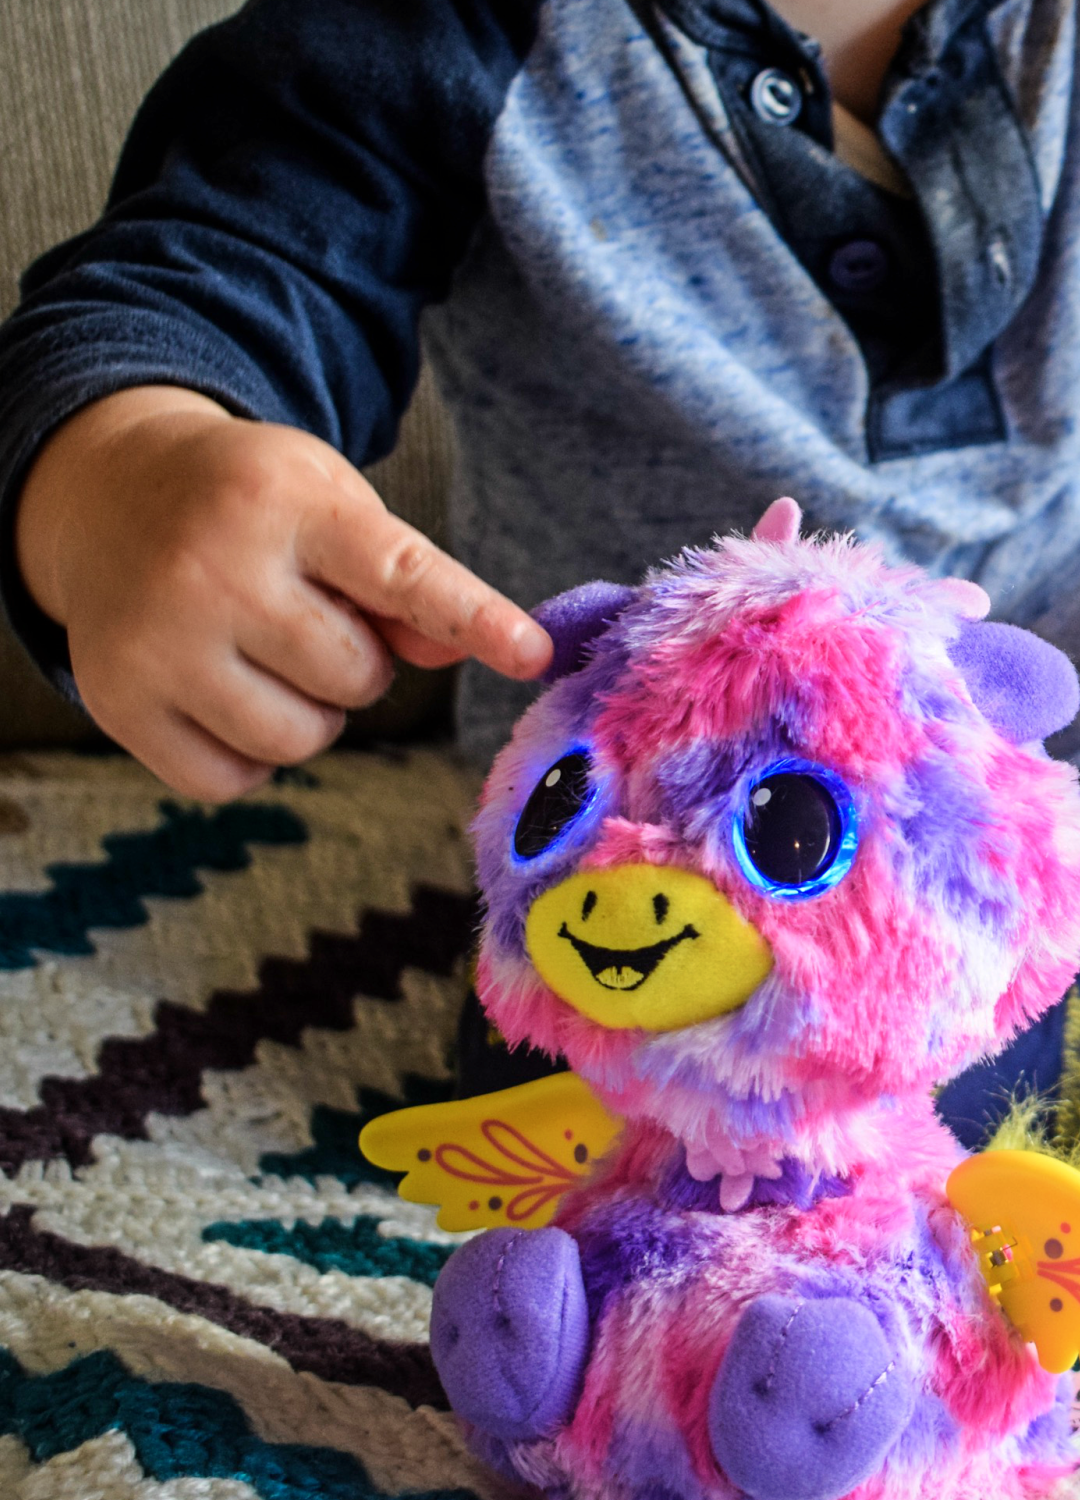 A photograph of one of the Giraven twins from the Hatchimals Surprise eggs being played with by a small boy - Reviewing the Brand New Hatchimals: Hatchimals Surprise - Mrs H's favourite things